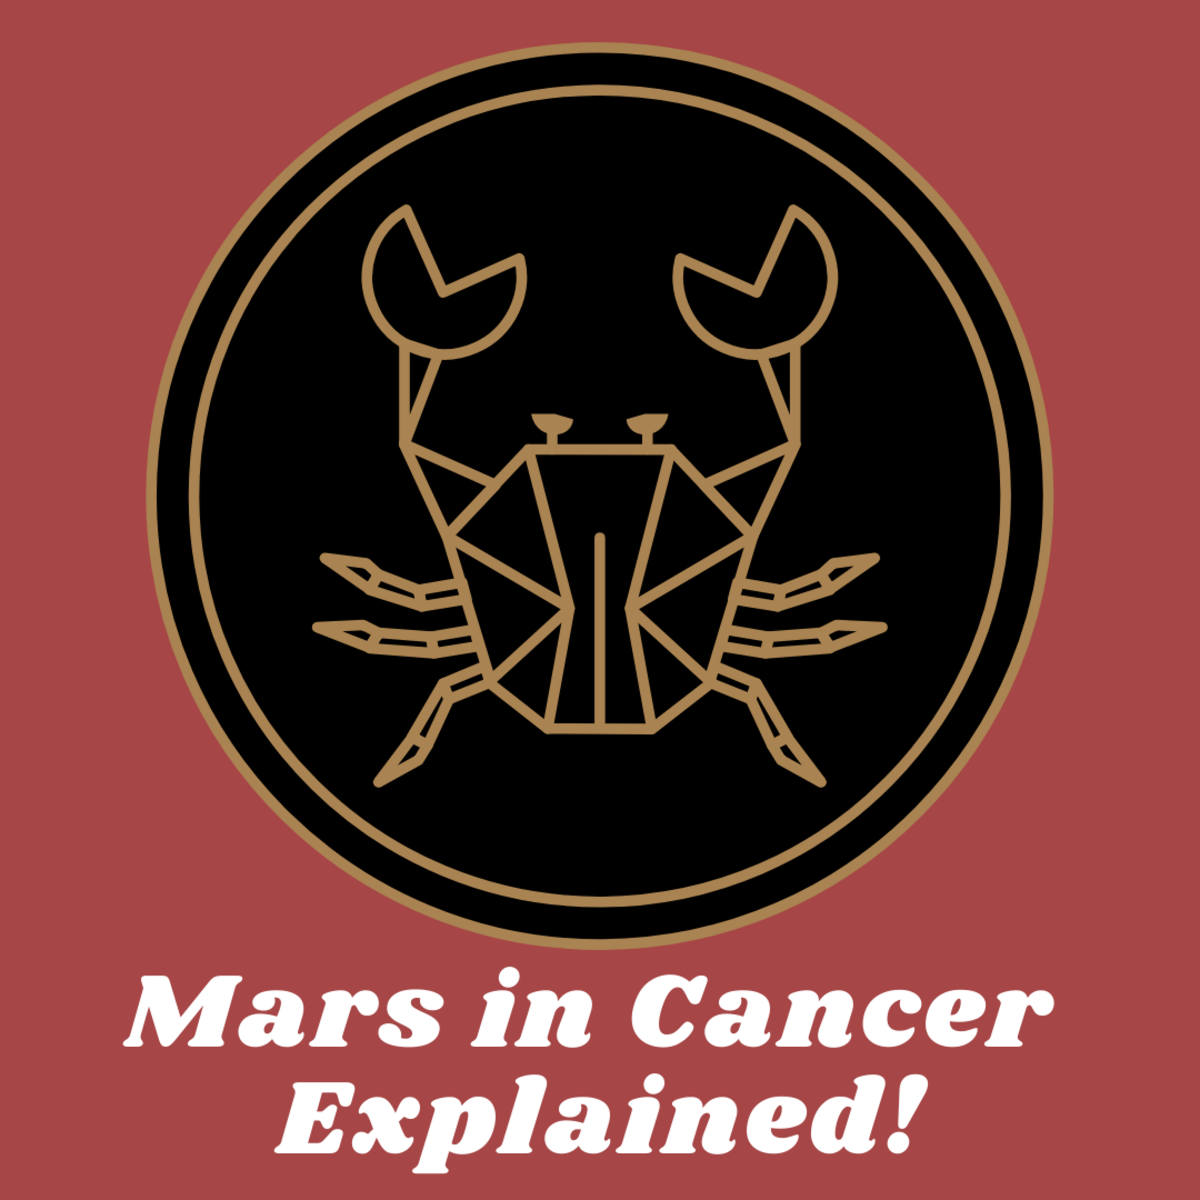 Mars in Cancer Explained